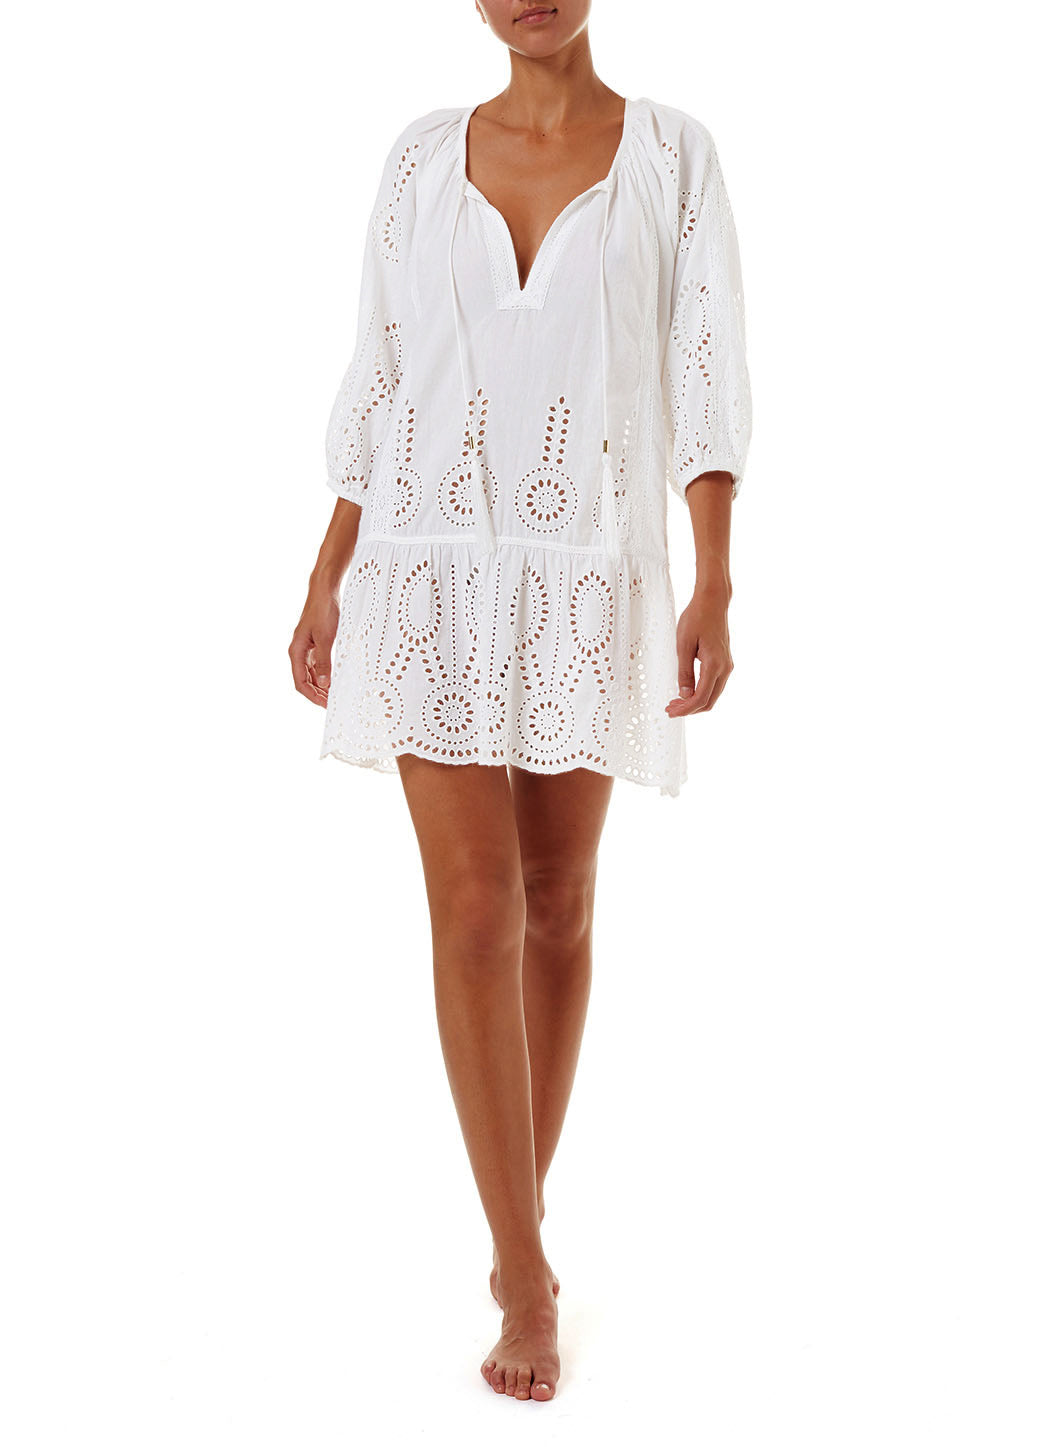 Ashley White Embroidered 3/4 Sleeve Short Cover-Up